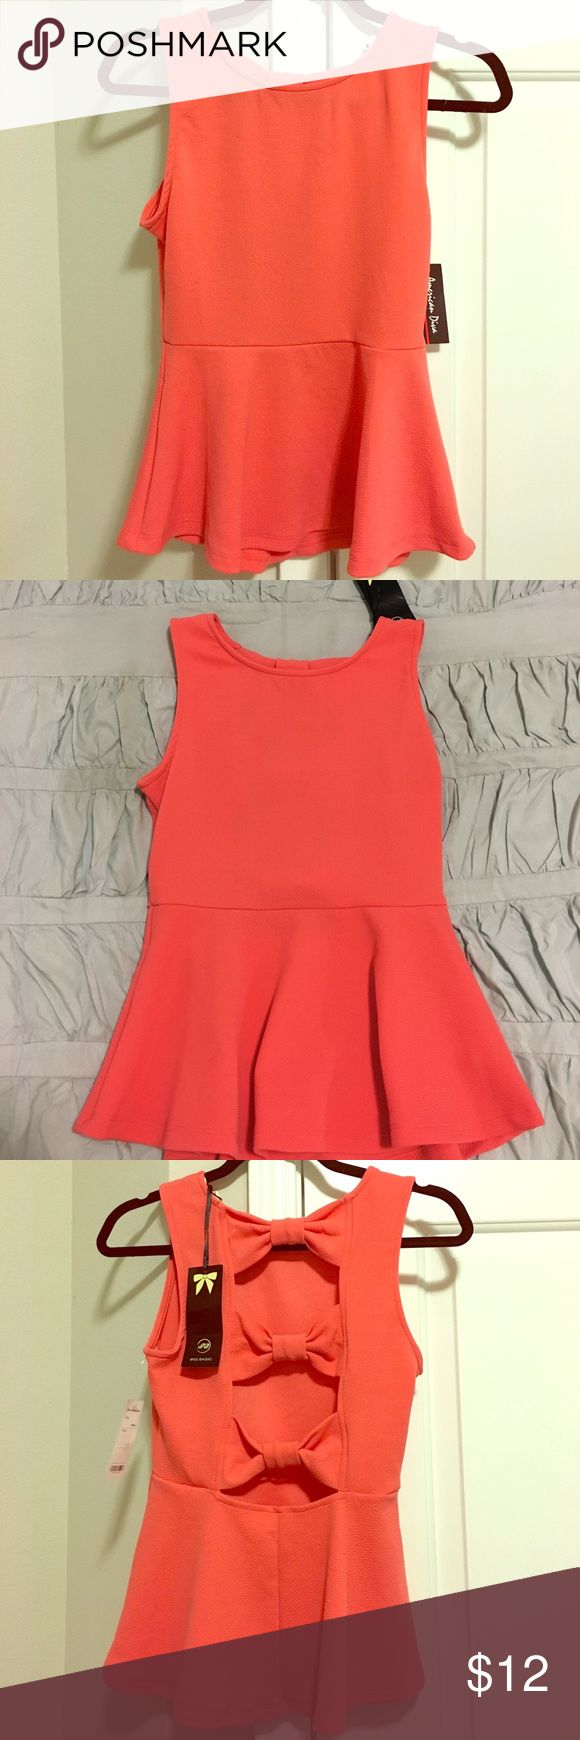 🆕 Adorable Coral Orange Shirt 💜 NWT! Adorable Coral Orange Shirt 💜 GREAT CONDITION. This beautiful shirt has a fitted front with and gorgeous open back! Perfect going out shirt that can be dressed up easily! New With Tags! Bundle with another item in my closet and save $$$ ☺ Iris los angeles Tops